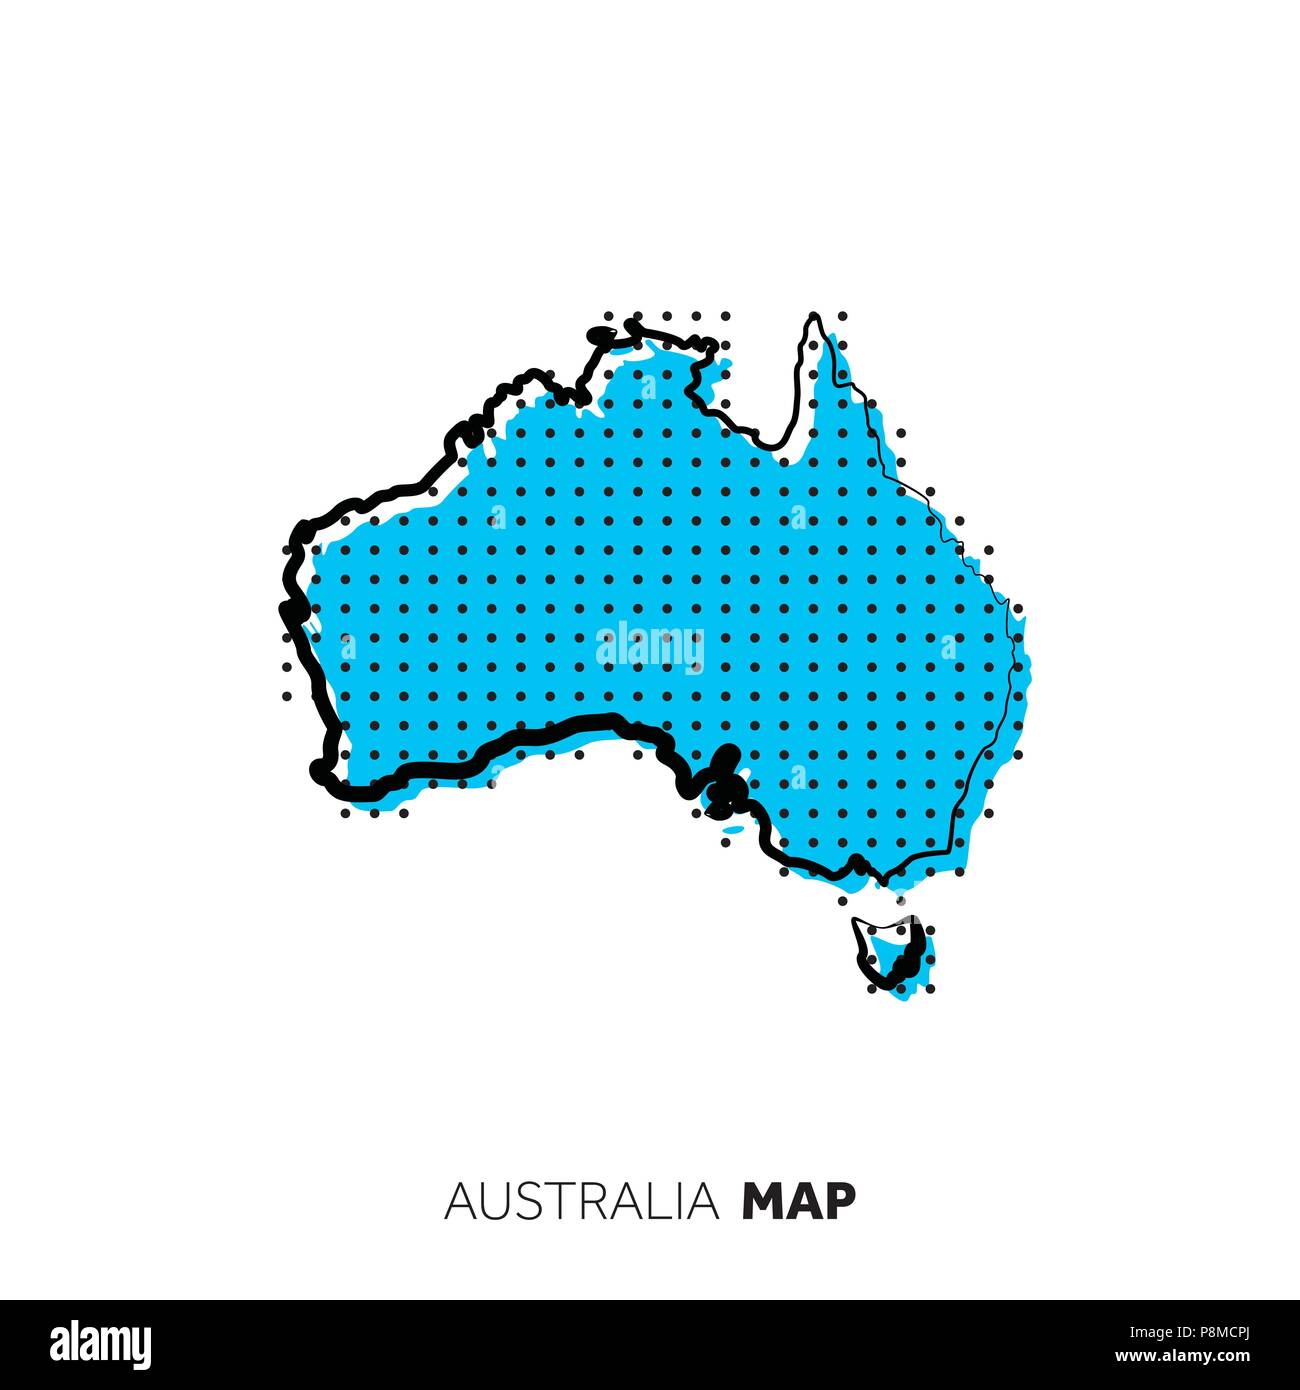 Australia Map Outline Vector.Australia Vector Country Map Map Outline With Dots Stock Vector Art